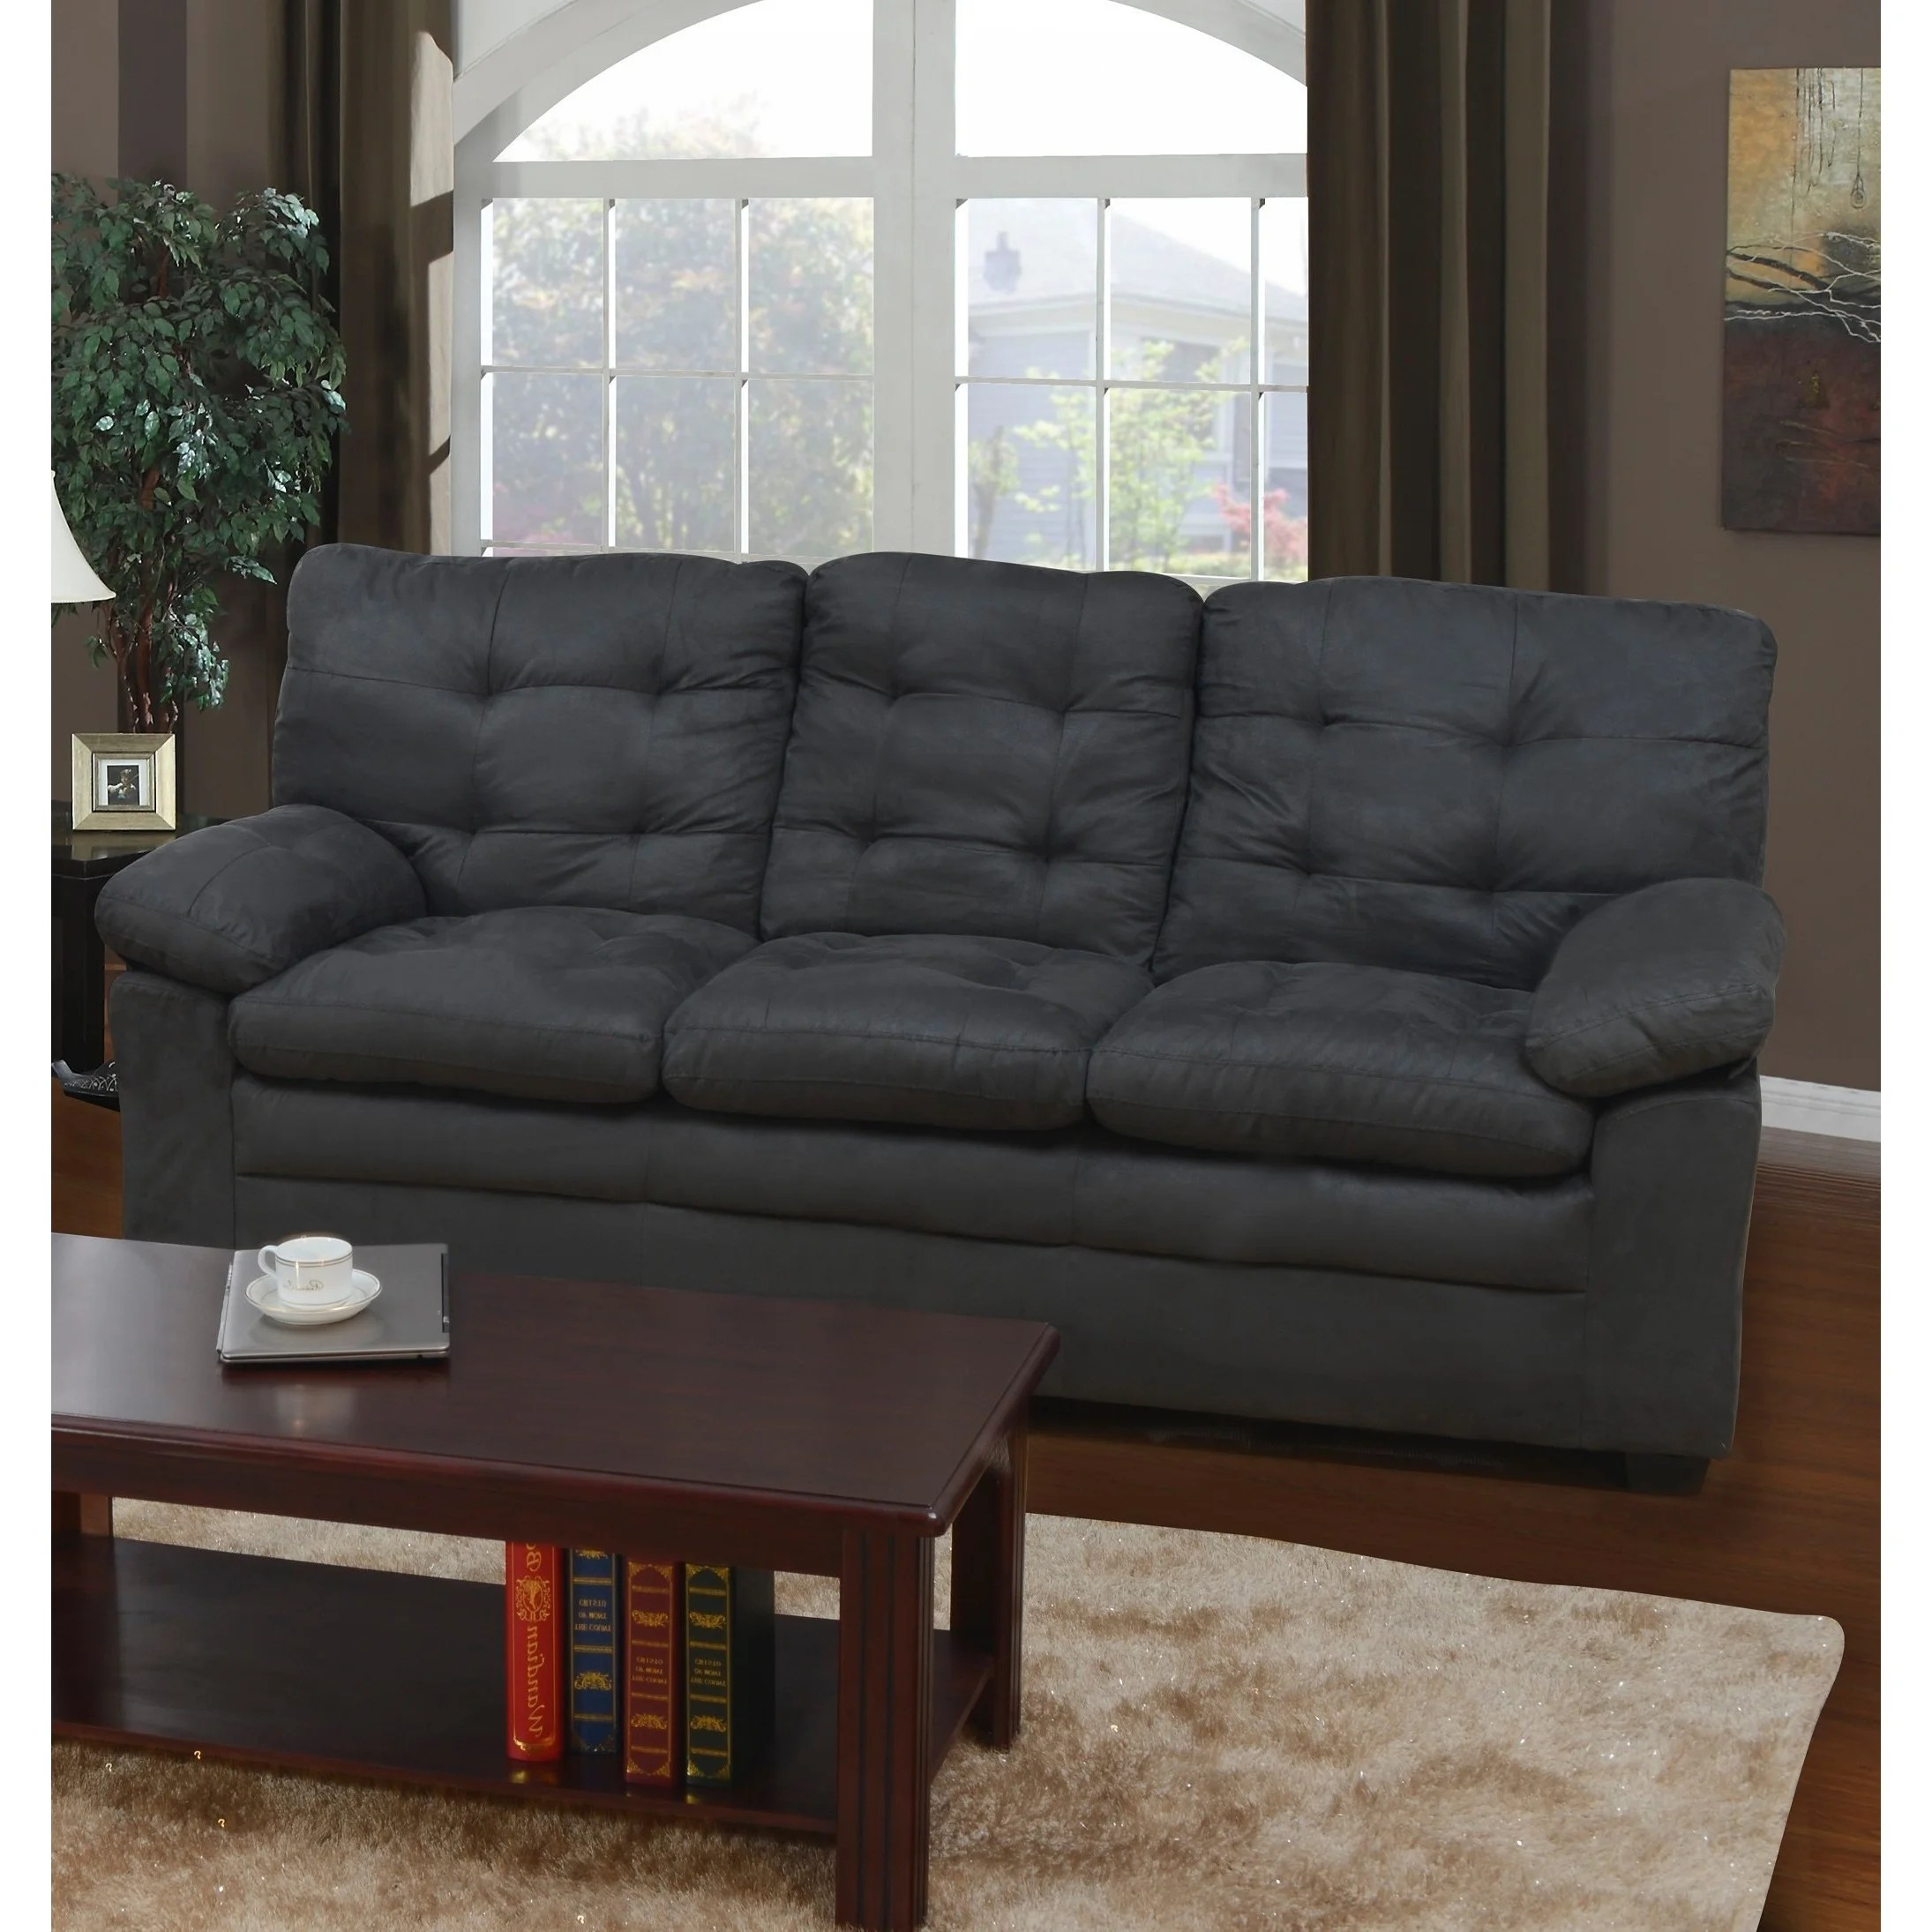 Shop Grey Microfiber Tufted Sofa Free Shipping Today Overstock 9929665